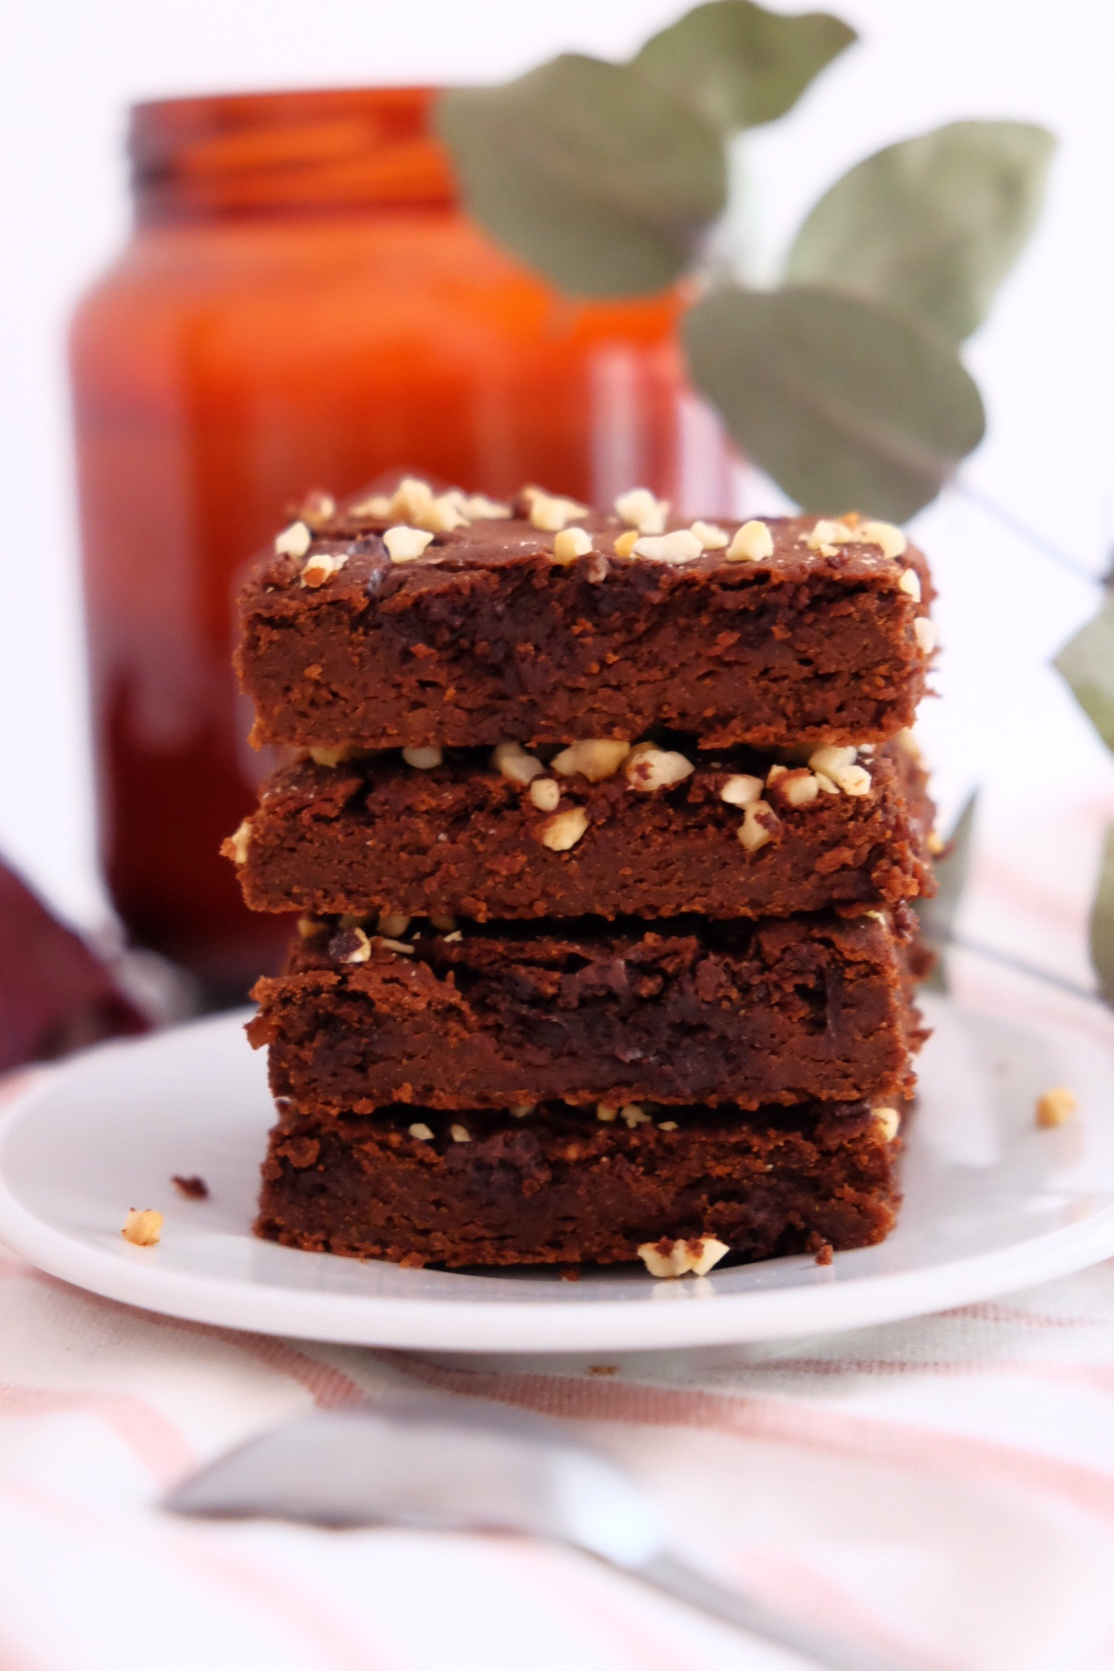 El brownie de chocolate y garbanzos